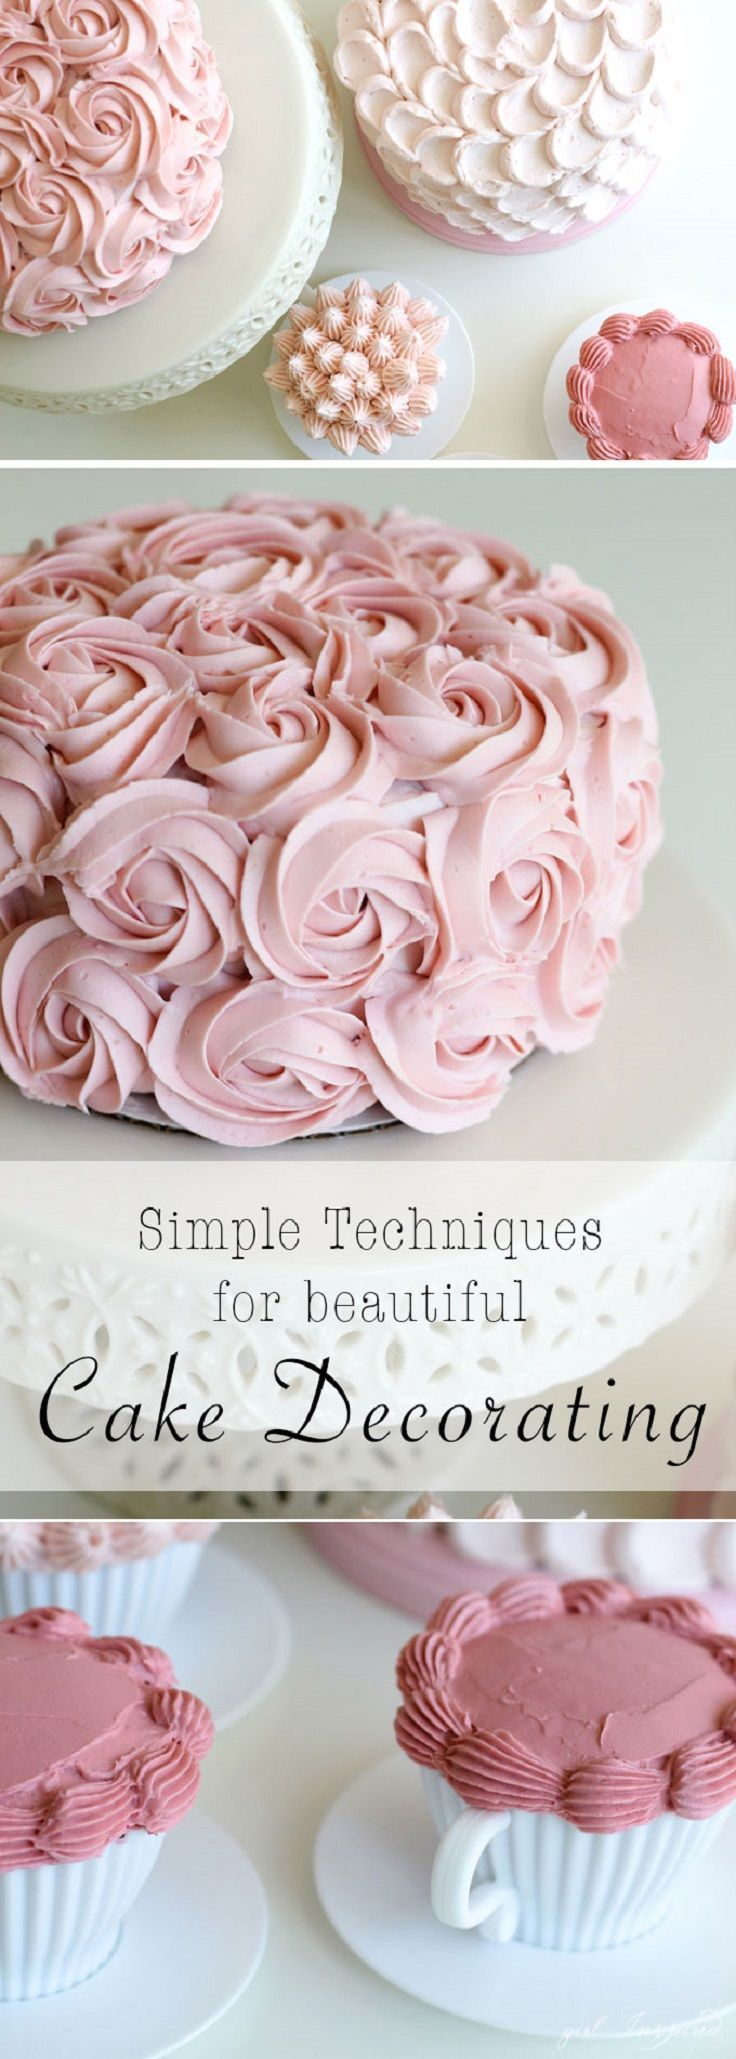 Decorating Tips 4 Simple And Stunning Cake Decorating Techniques  17 Amazing Cake